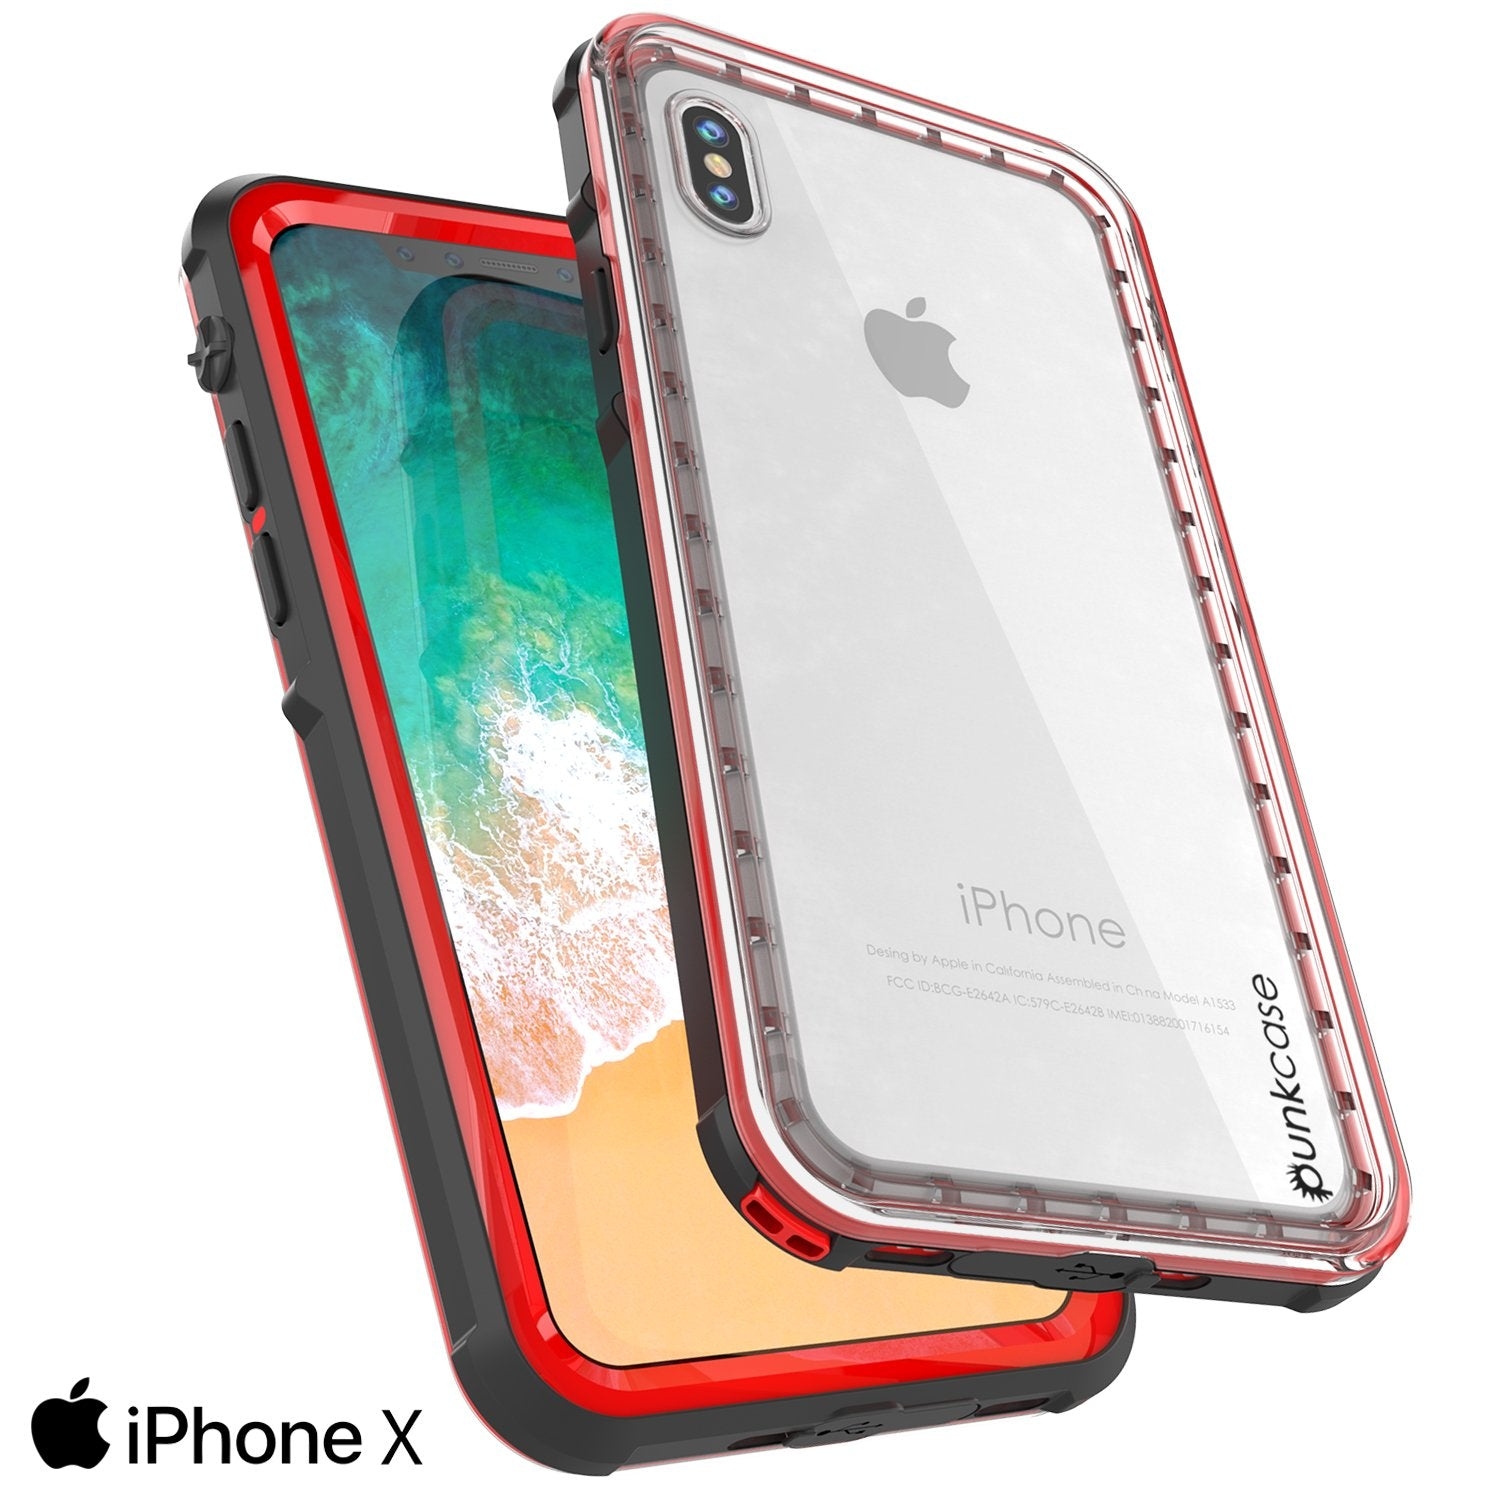 iPhone X Case, PUNKCase [CRYSTAL SERIES] Protective IP68 Certified Cover W/ Attached Screen Protector - DustPROOF, ShockPROOF, SnowPROOF - Ultra Slim Fit for Apple iPhone 10 [RED]